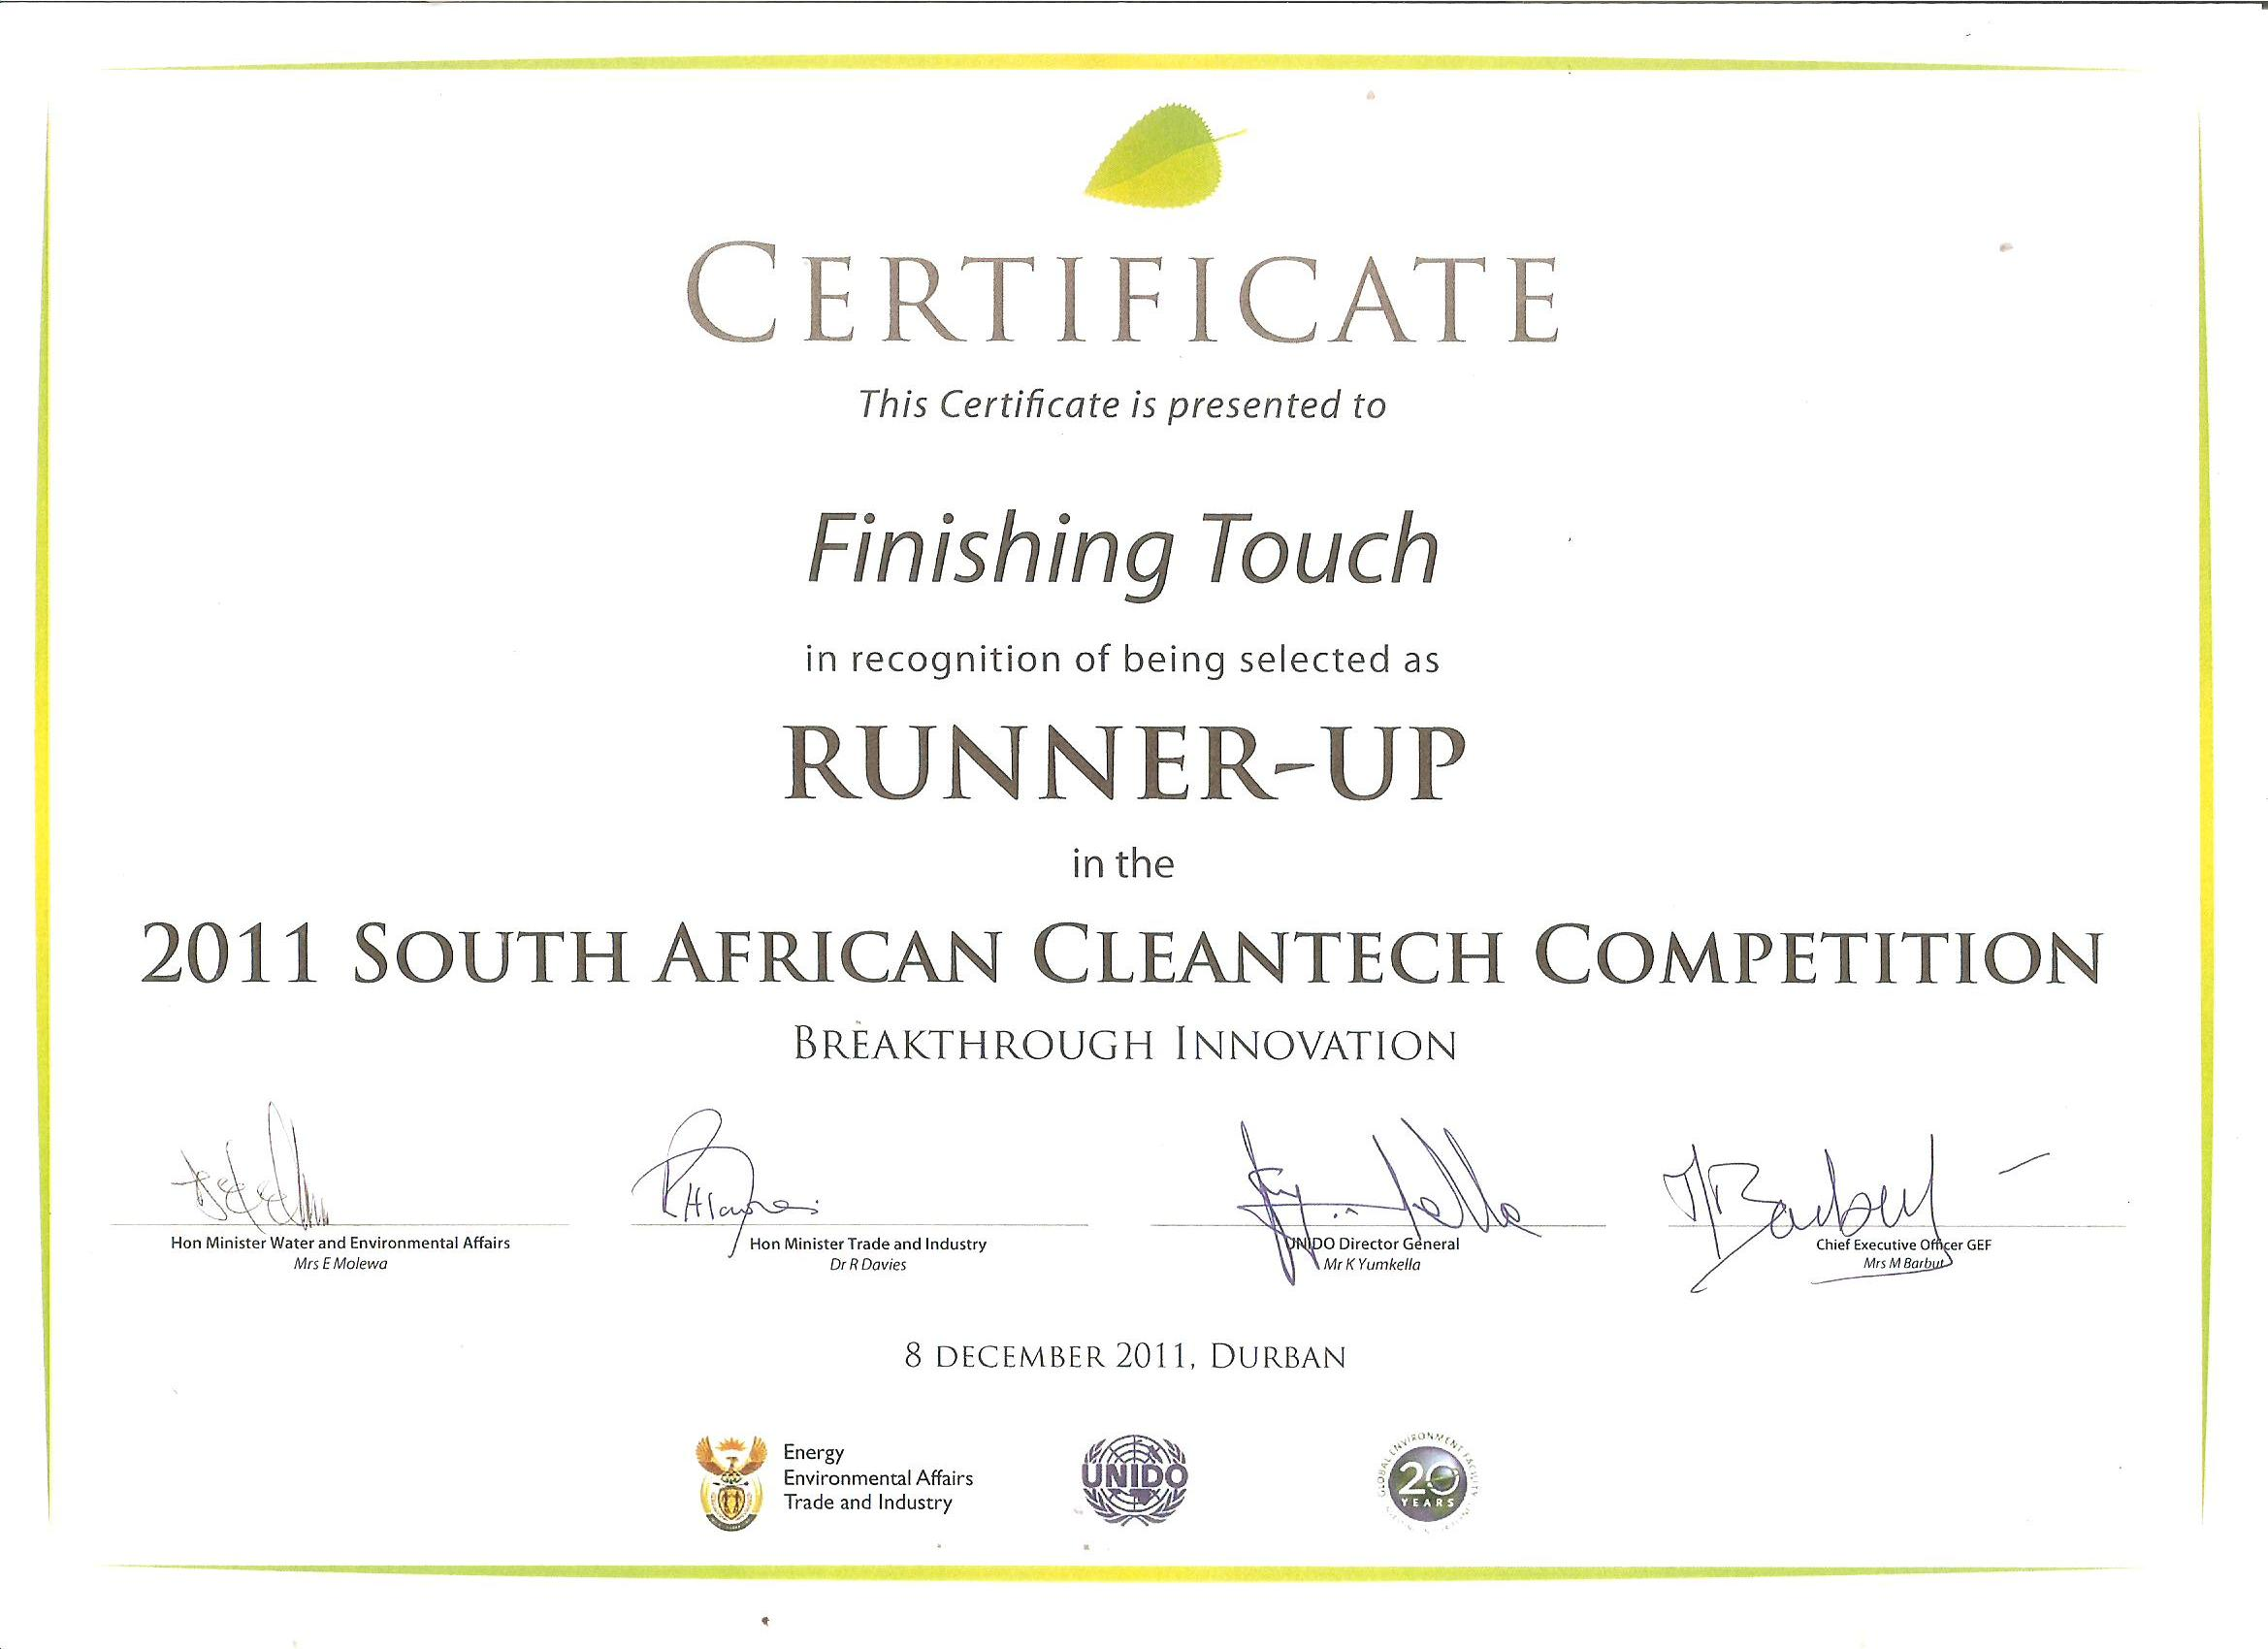 Energy Saving 2 Plate And 4 Electric Cooking Hob Vuthisa Electrical Wiring Certificate South Africa The Csir Invited Econohob In International Cleantech Open Competition For Breakthrough Innovation Run Conjunction With Cop 17 Durban